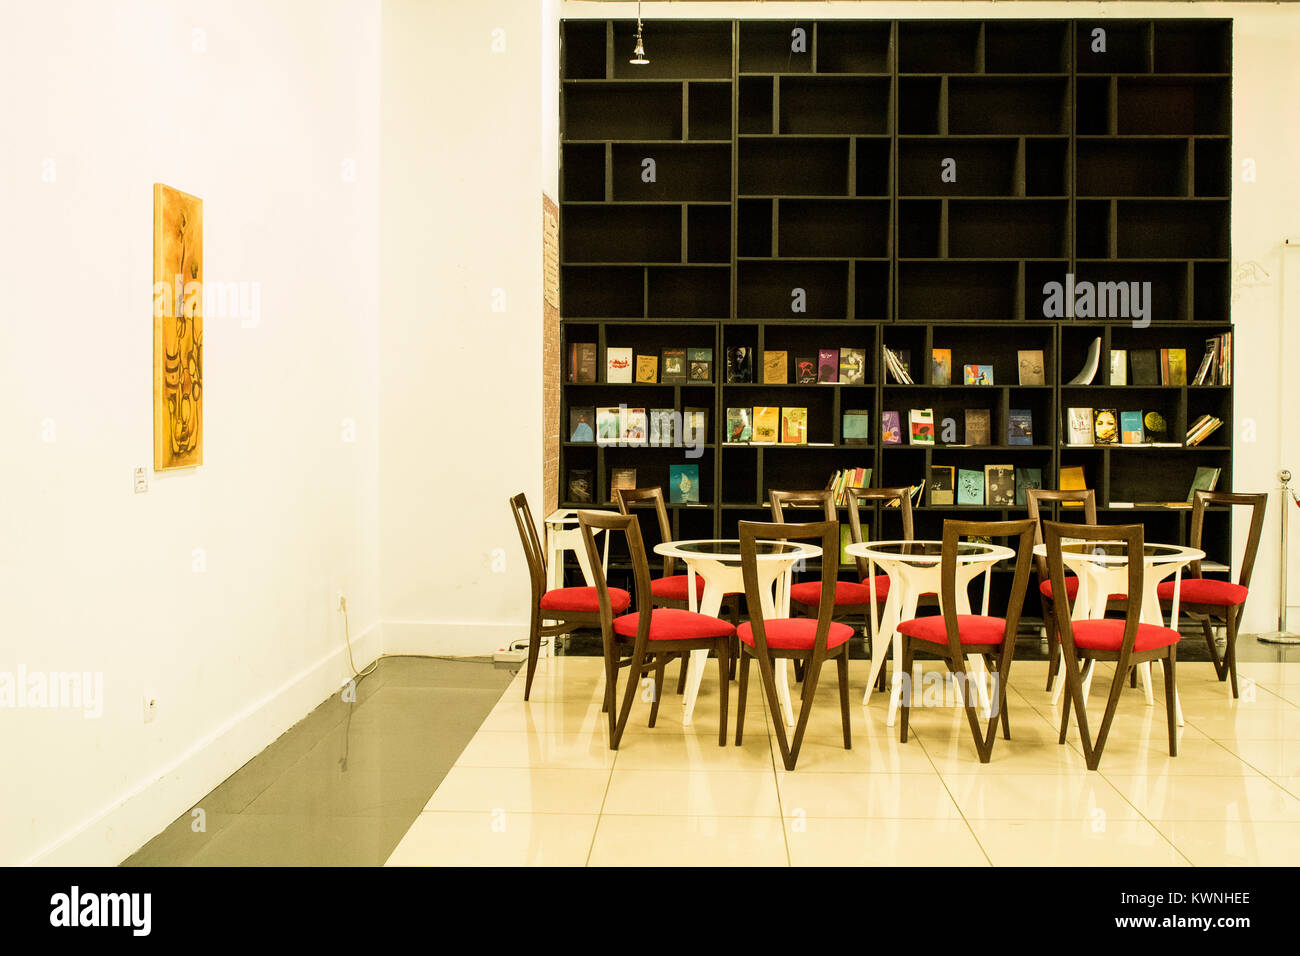 reading room with a bookcase to spend time perfectly.this is an art gallery with a reading room. - Stock Image